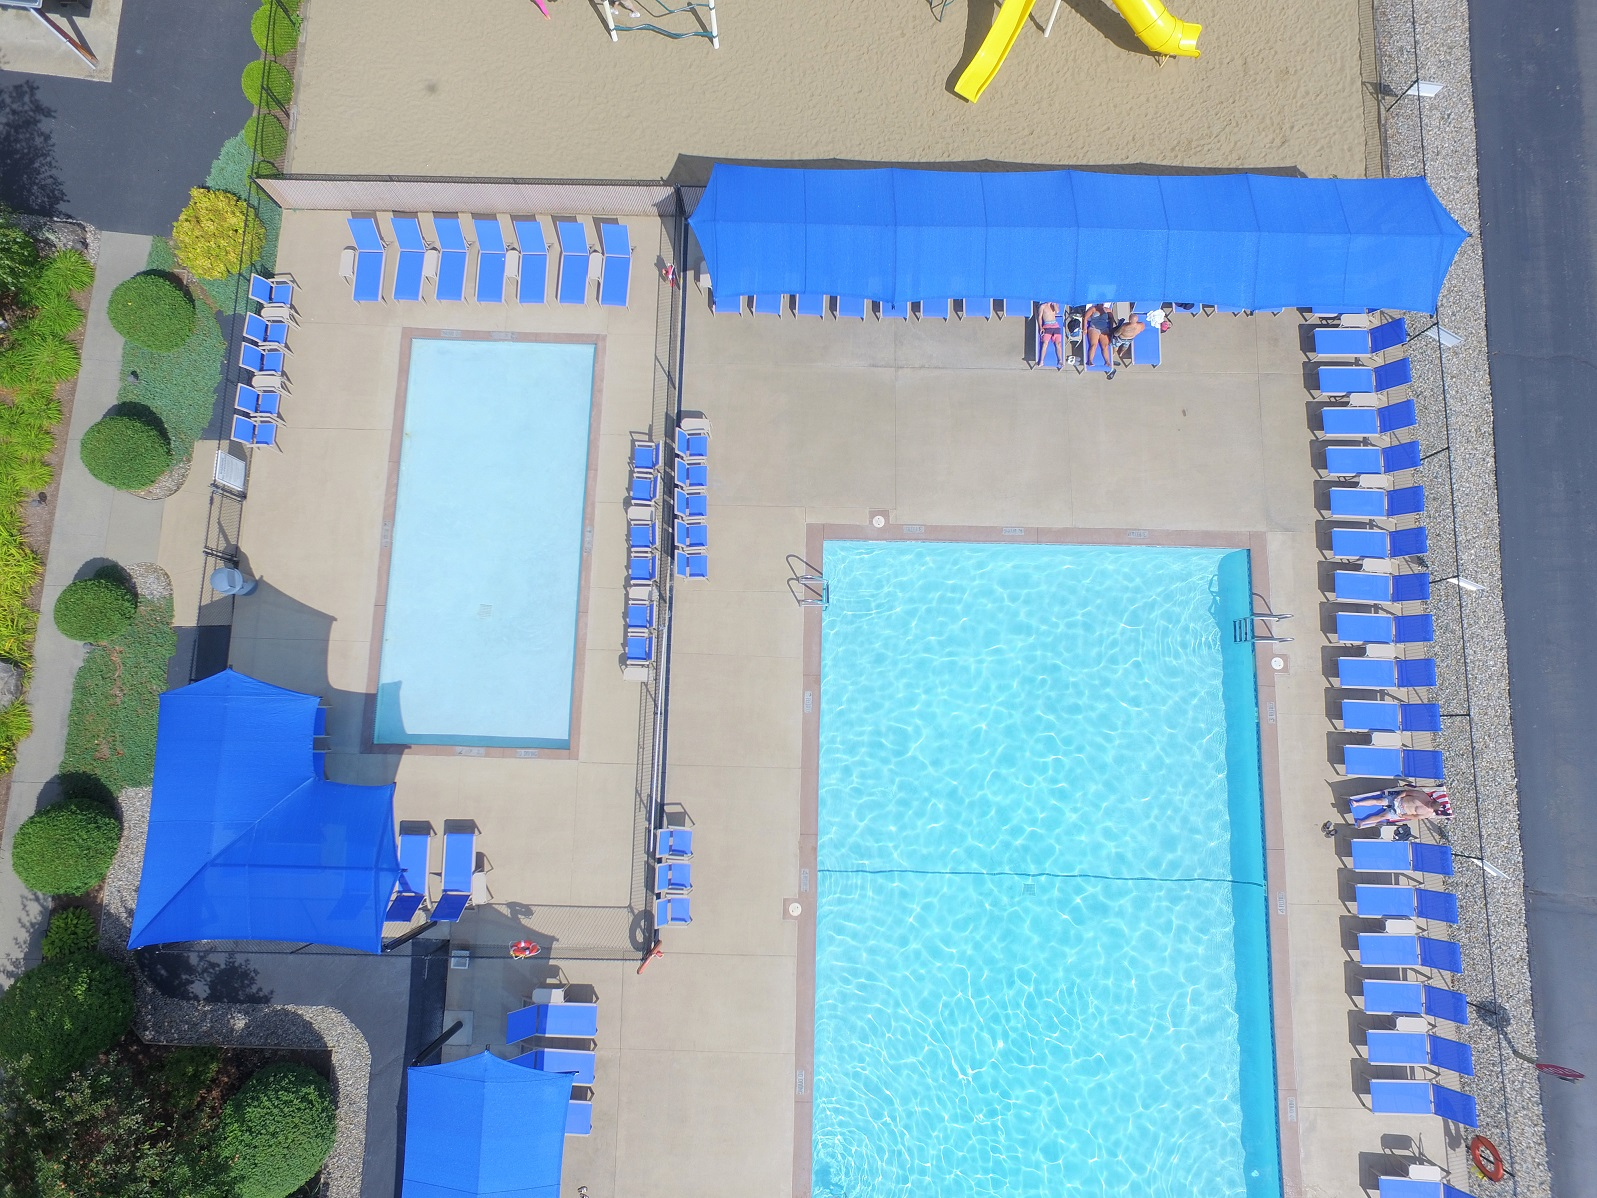 aerial view of west outdoor swimming pool in bright sun